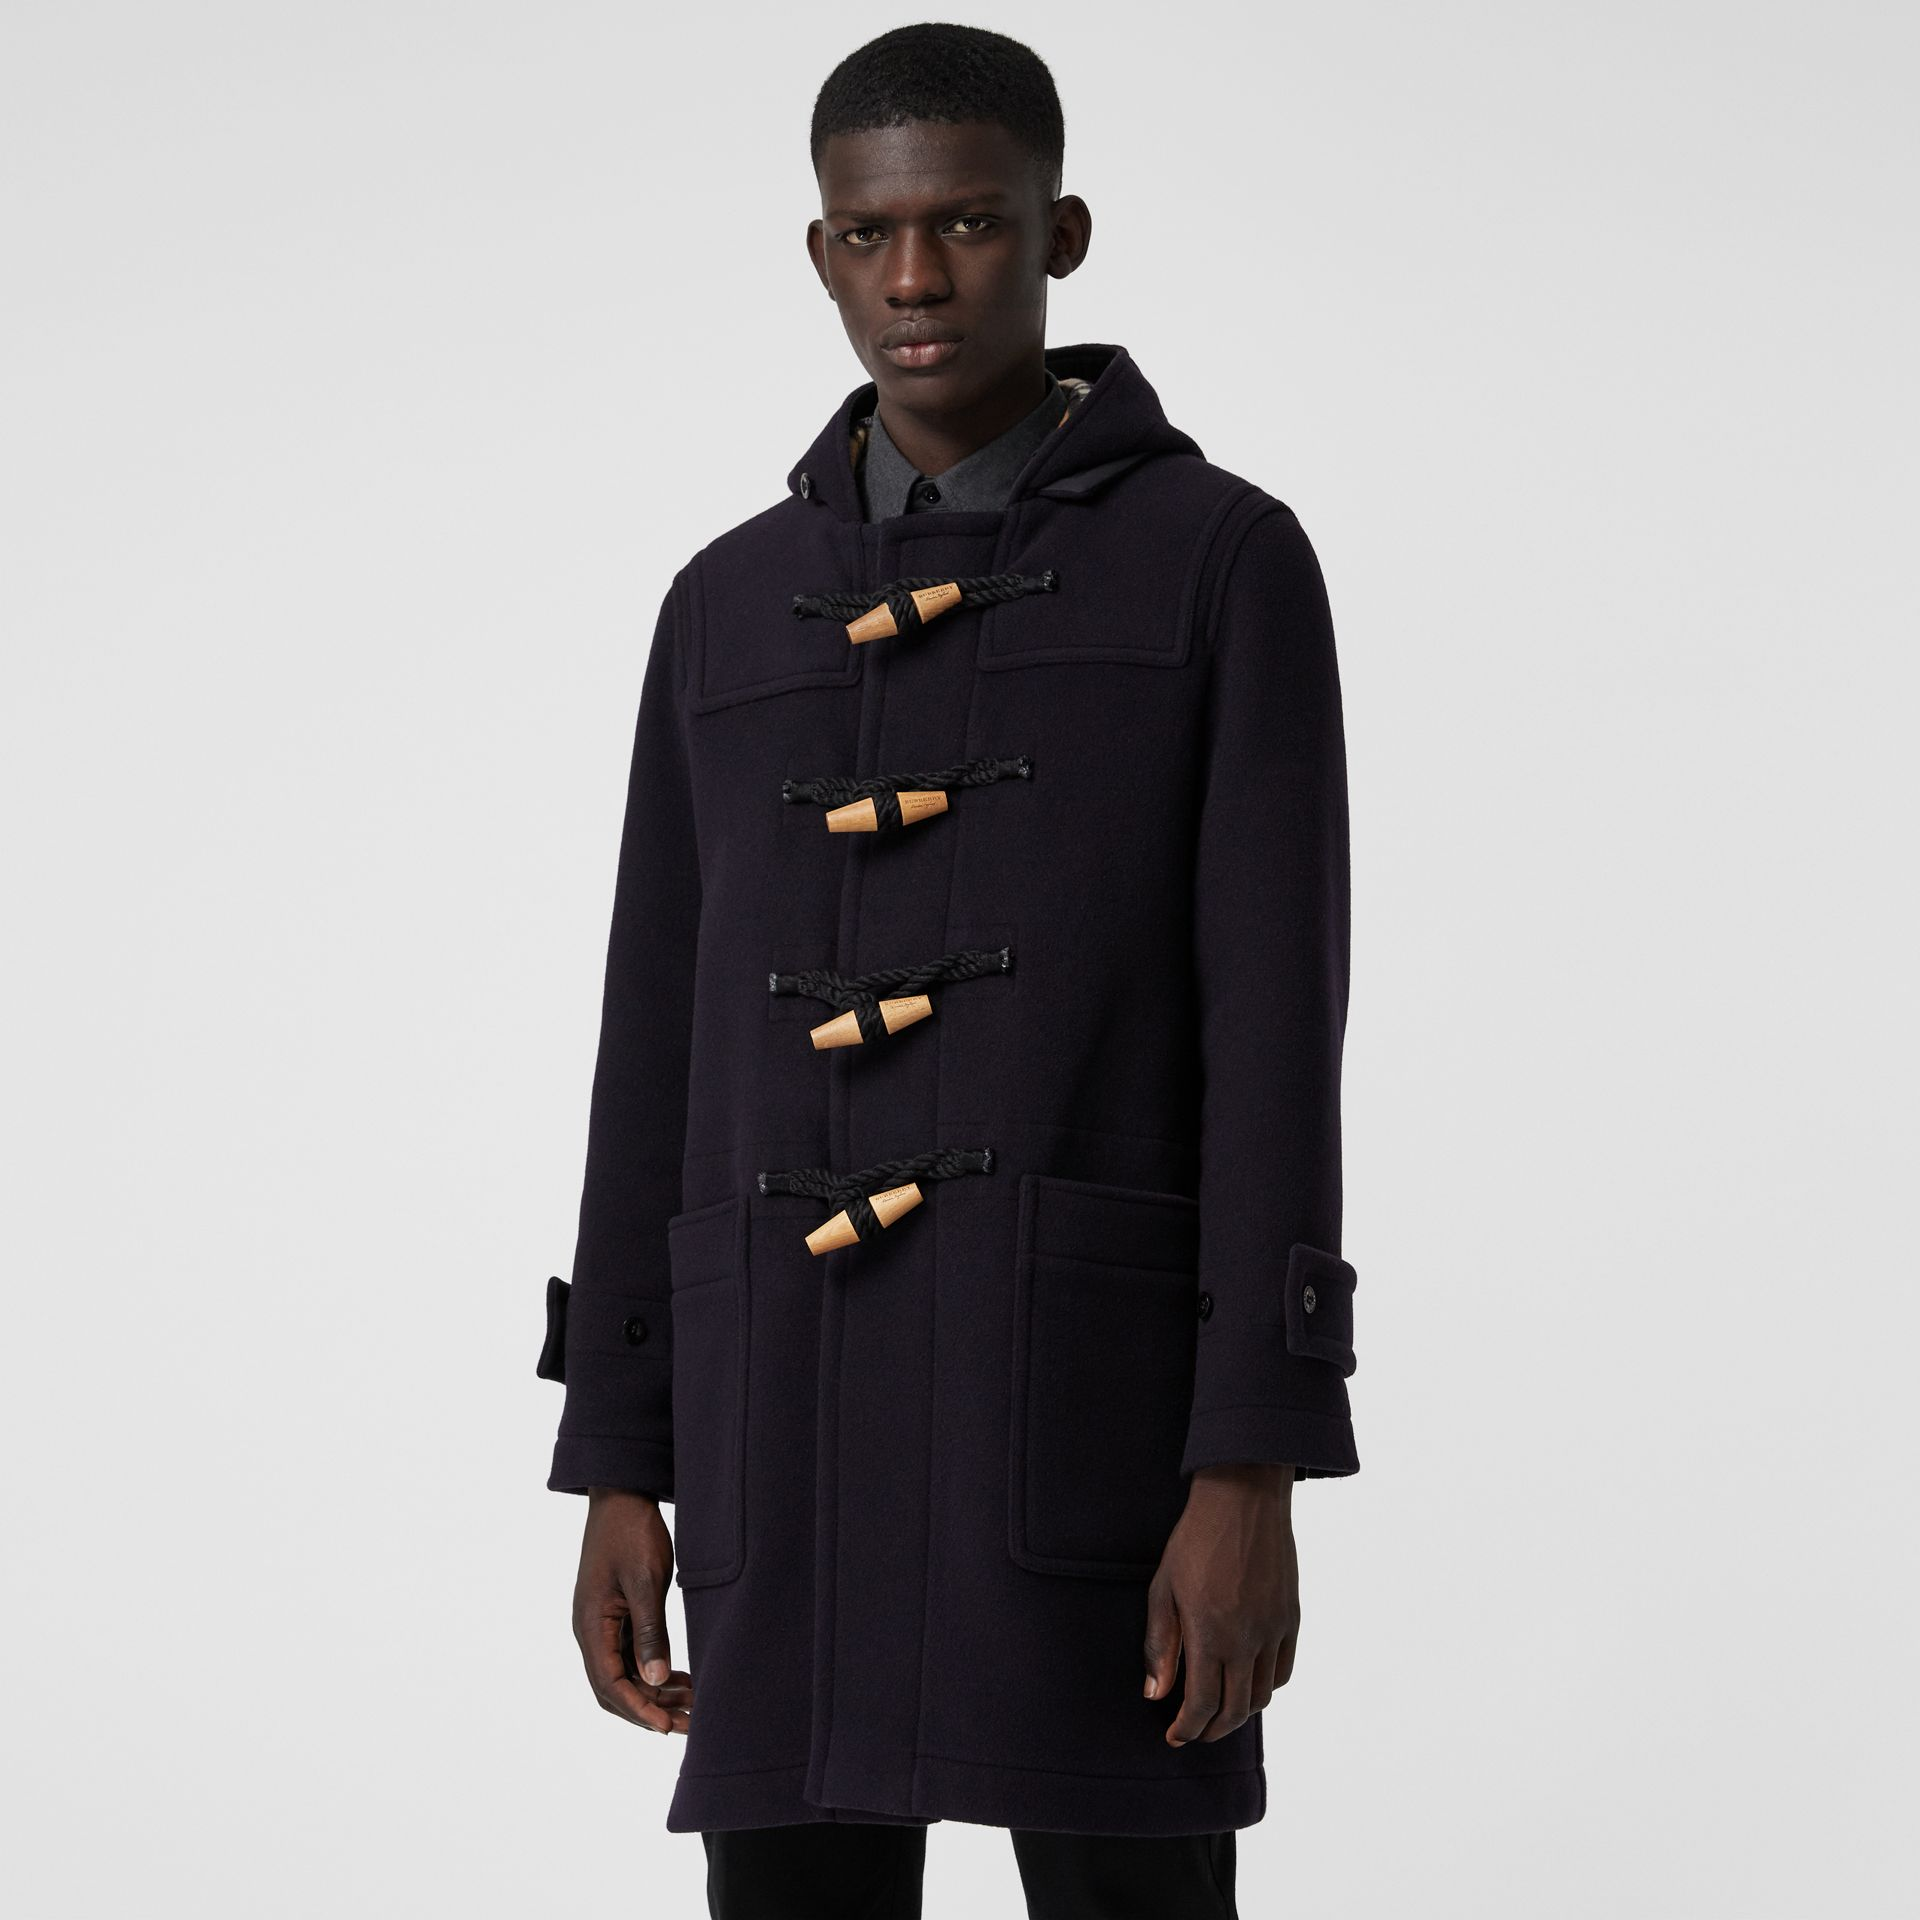 Vintage Check Detail Wool Blend Hooded Duffle Coat in Navy - Men | Burberry Canada - gallery image 5